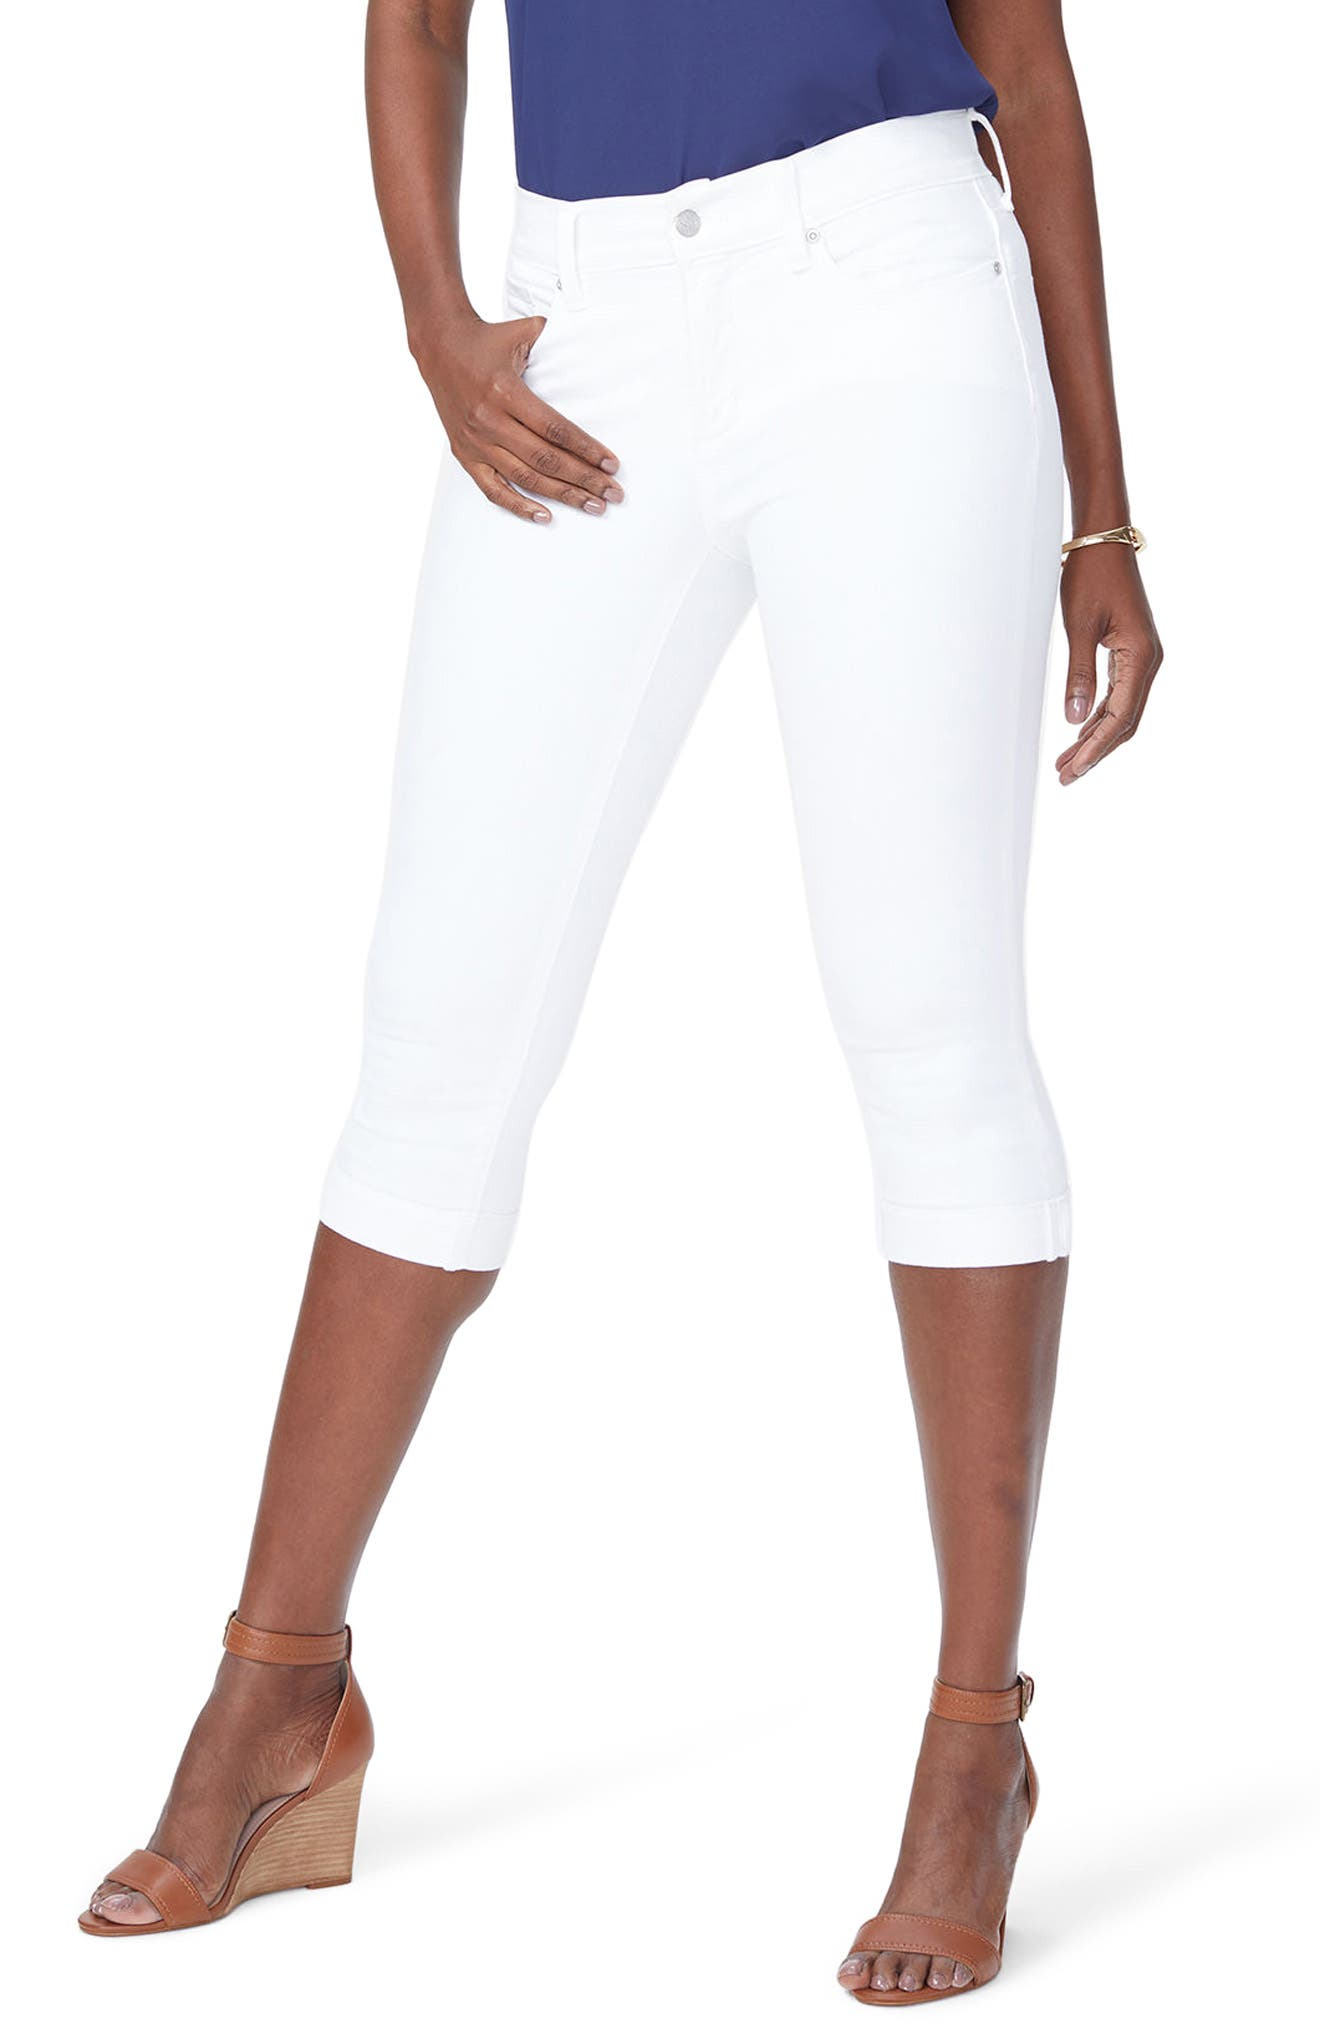 Petite Women's NYDJ Marilyn Crop Jeans